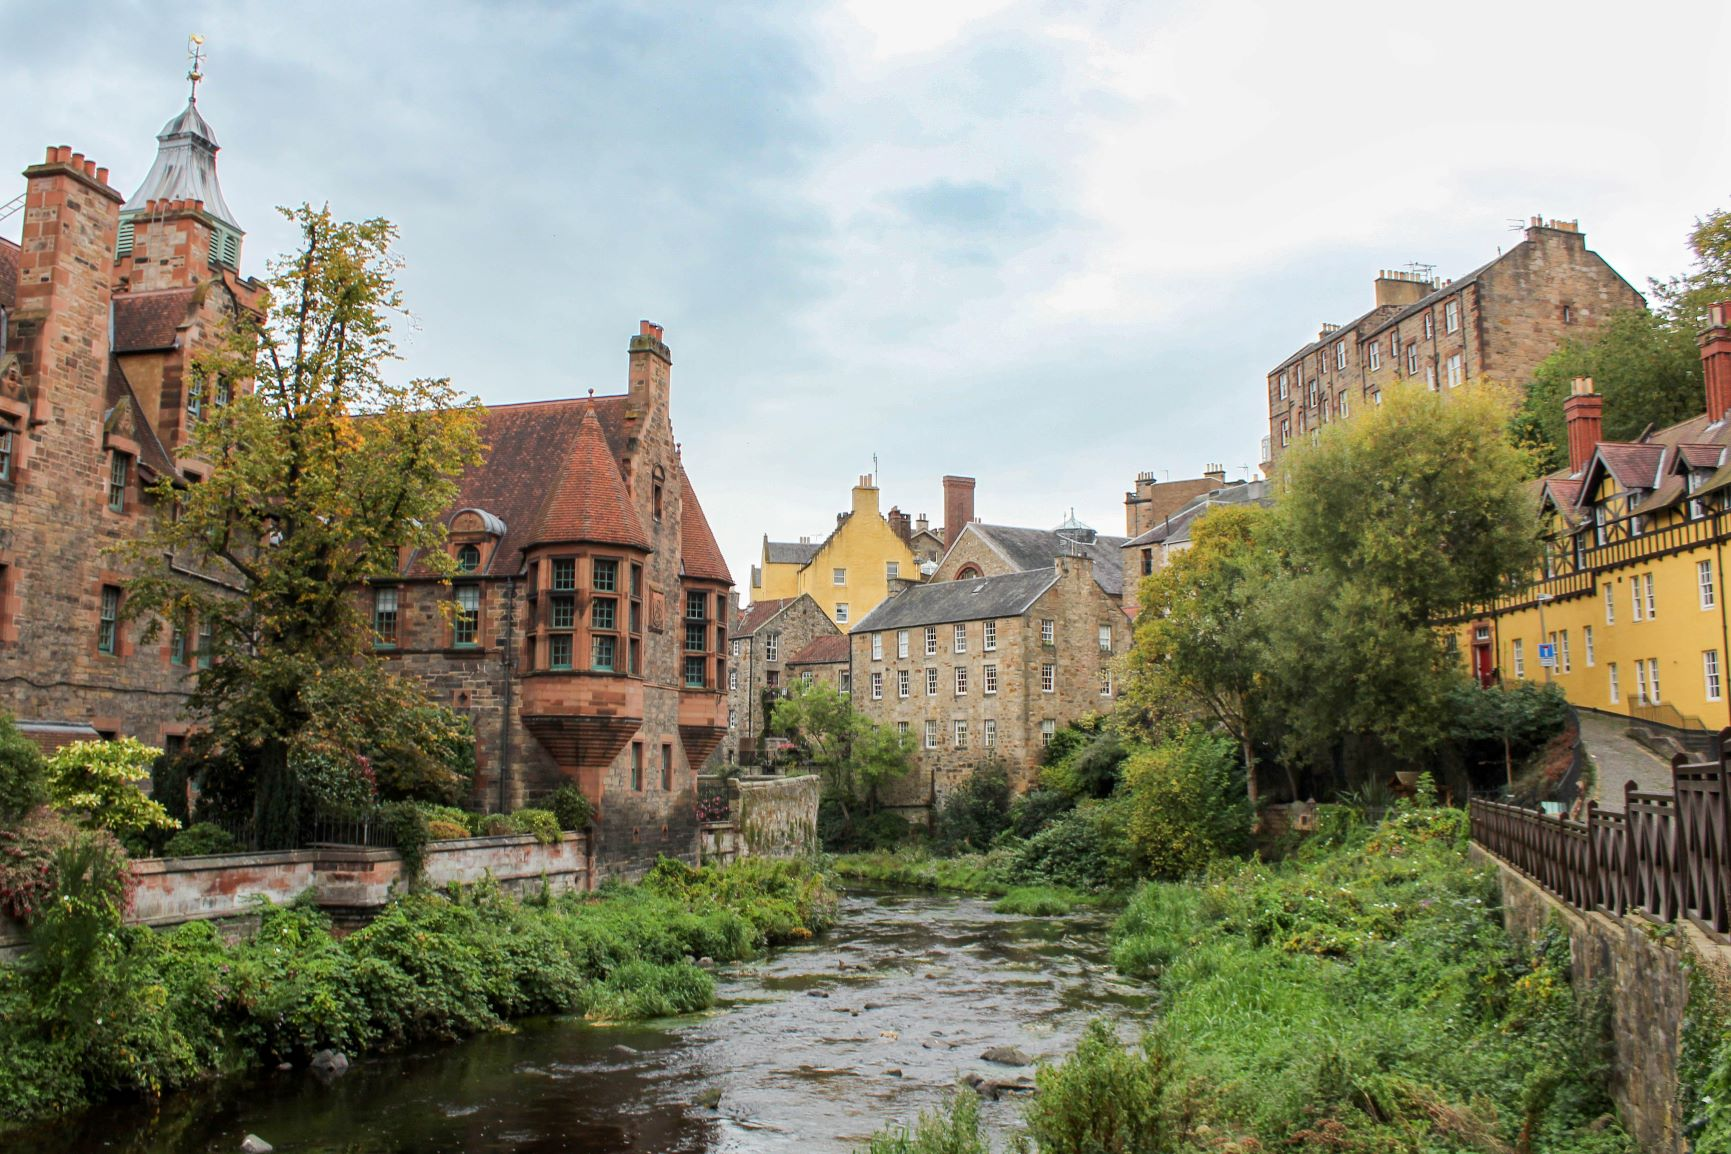 Dean Village, A. O'Donnell, Fall 2017 Arcadia Scotland Student.